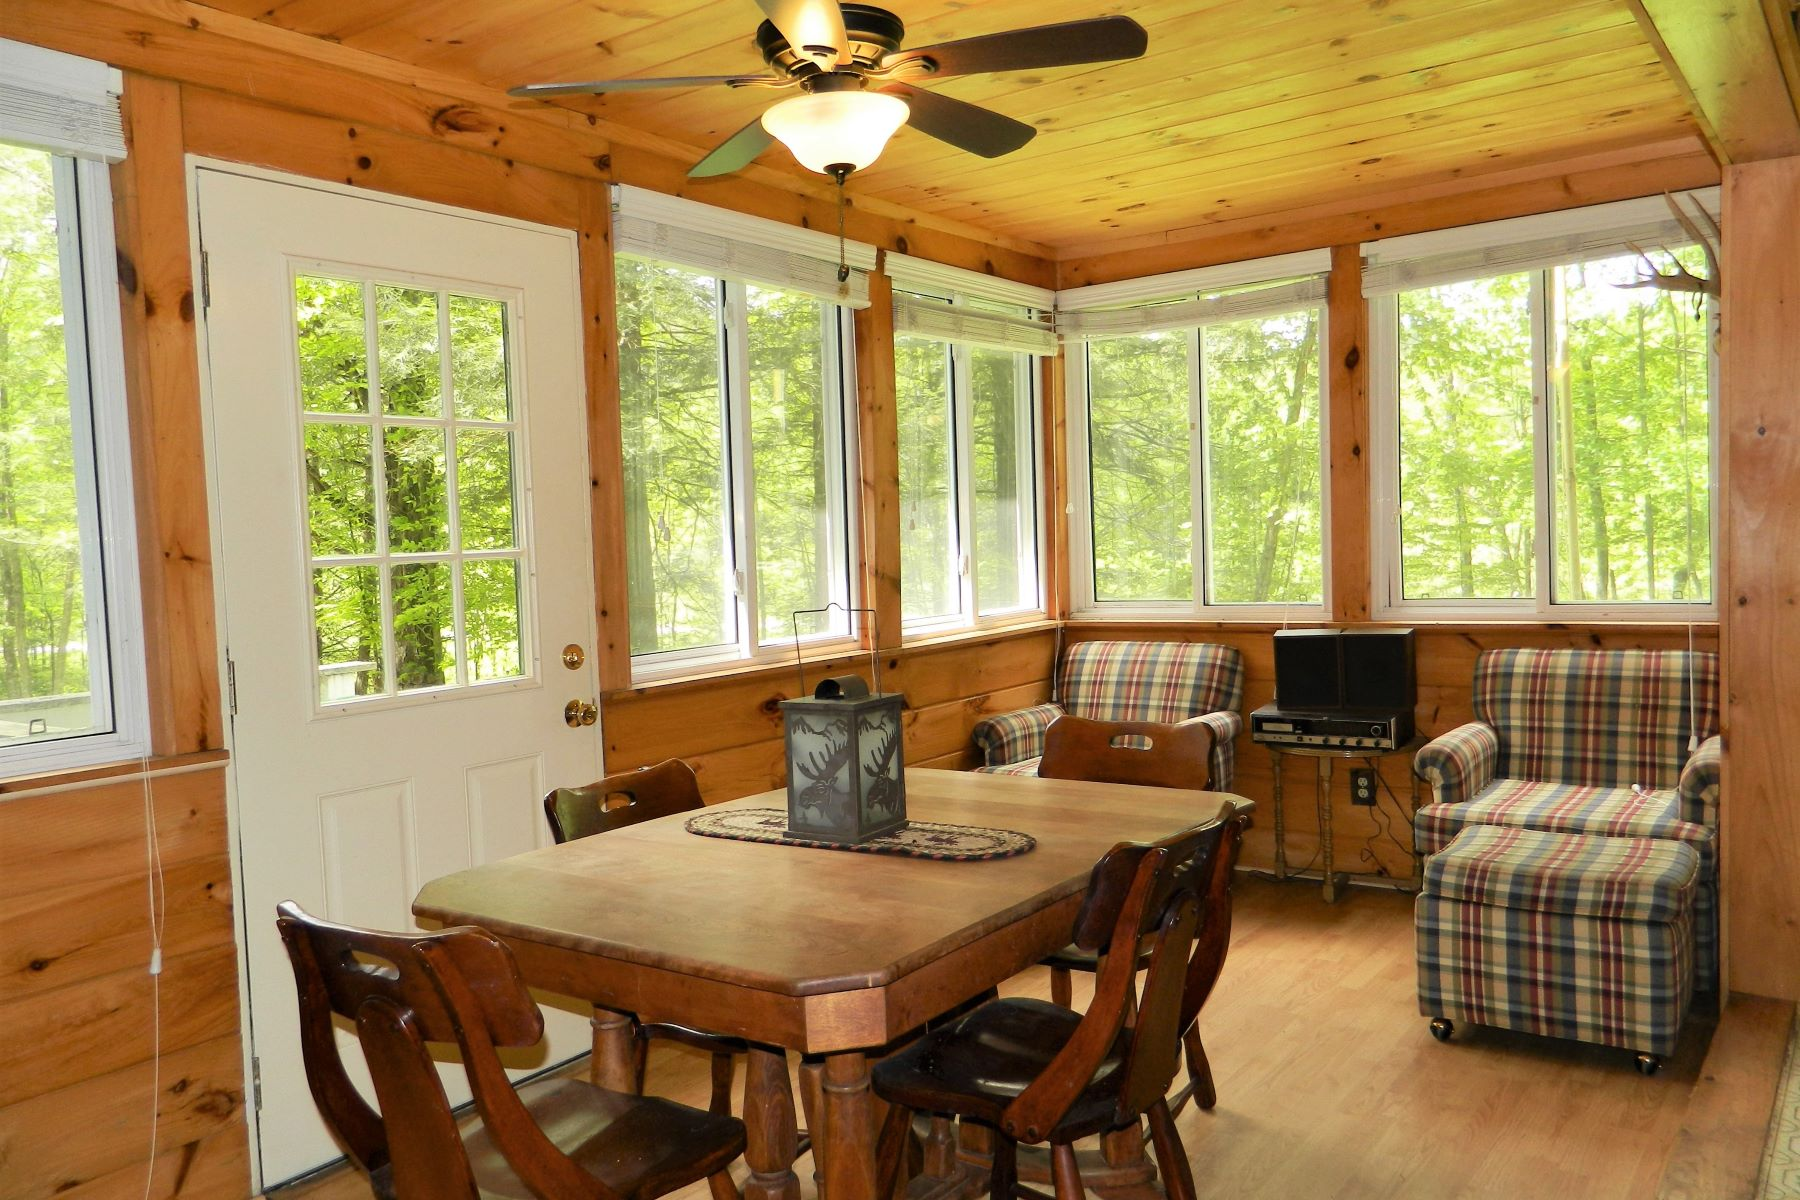 single family homes for Sale at 3923 Vt Route 14 South Route, Williamstown 3923 Vt Route 14 South Route Williamstown, Vermont 05679 United States